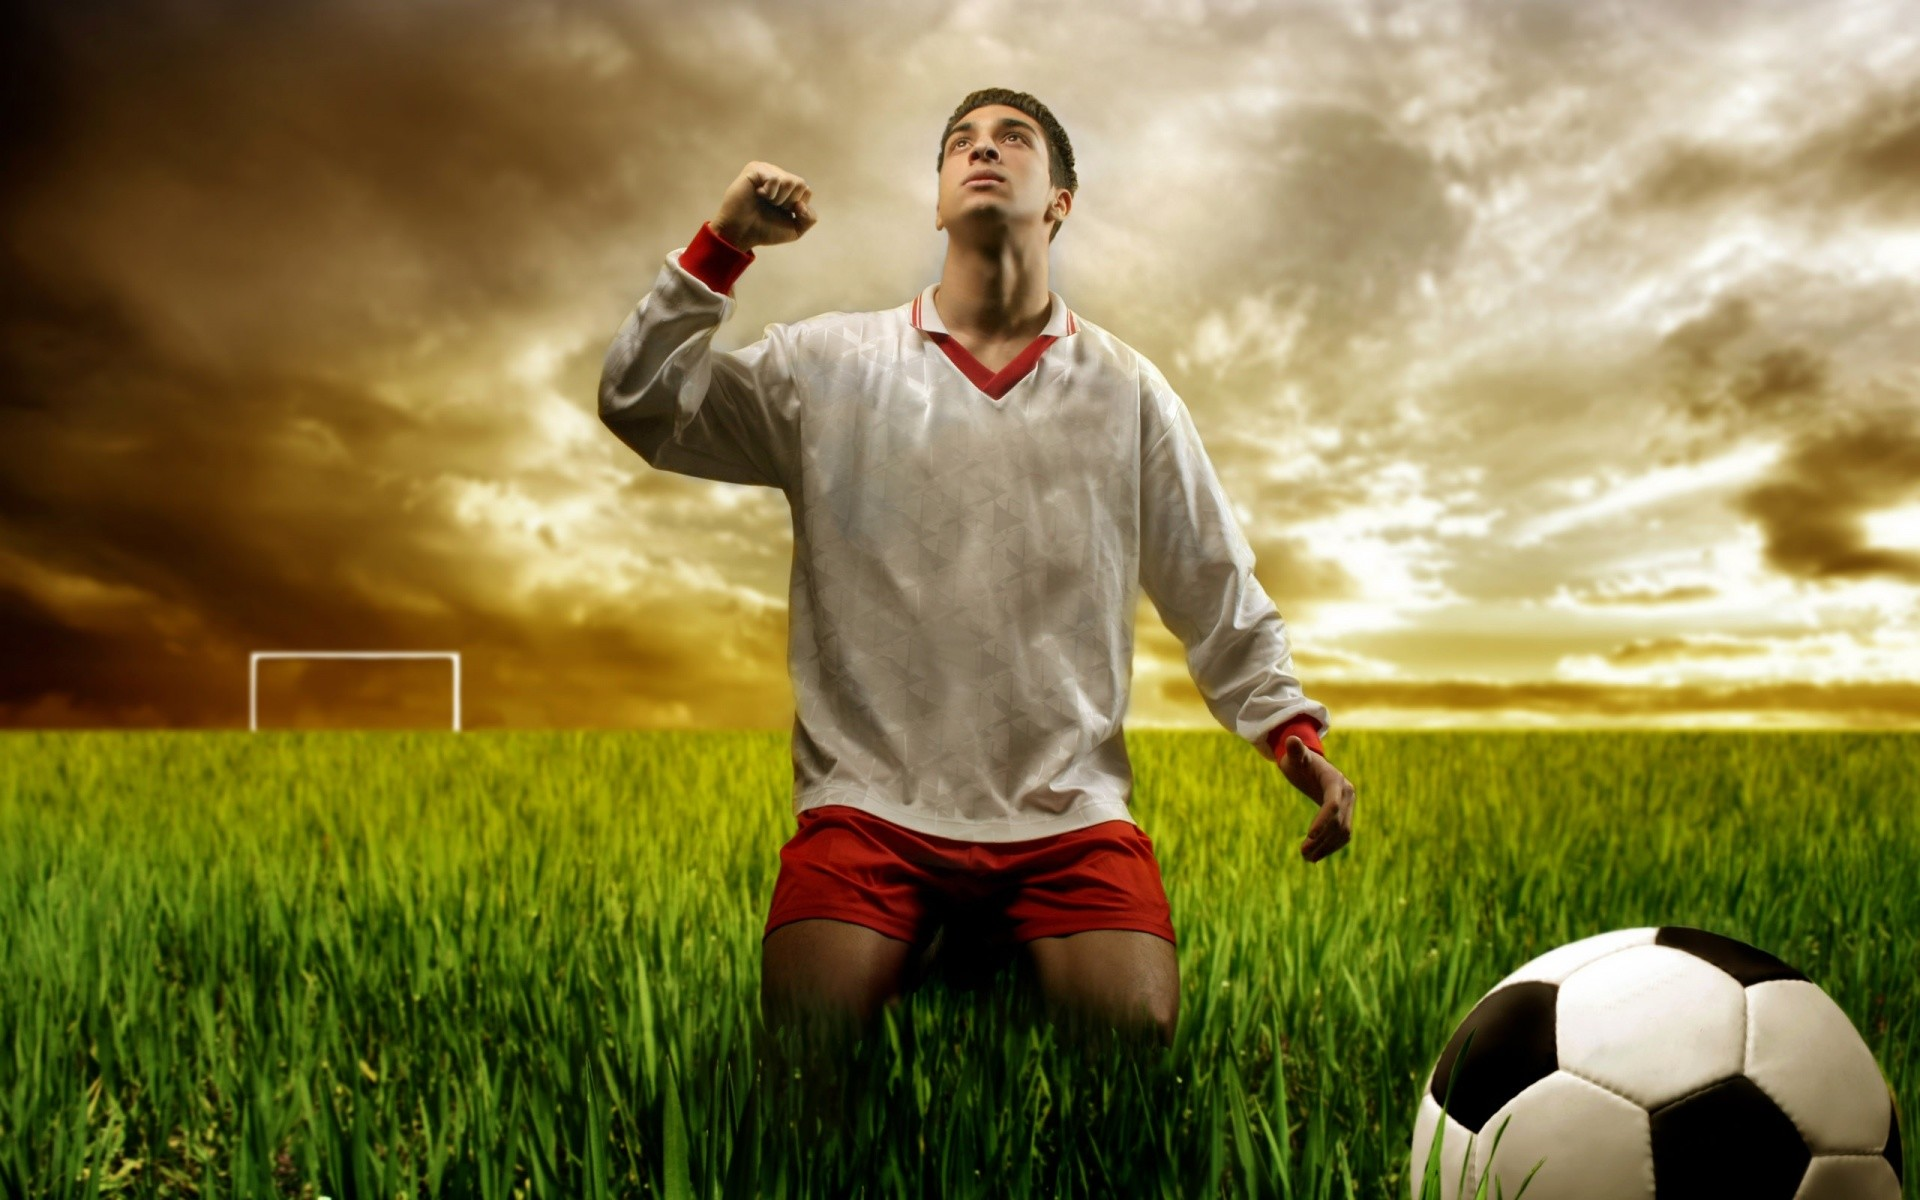 Football player wallpapers and stock photos